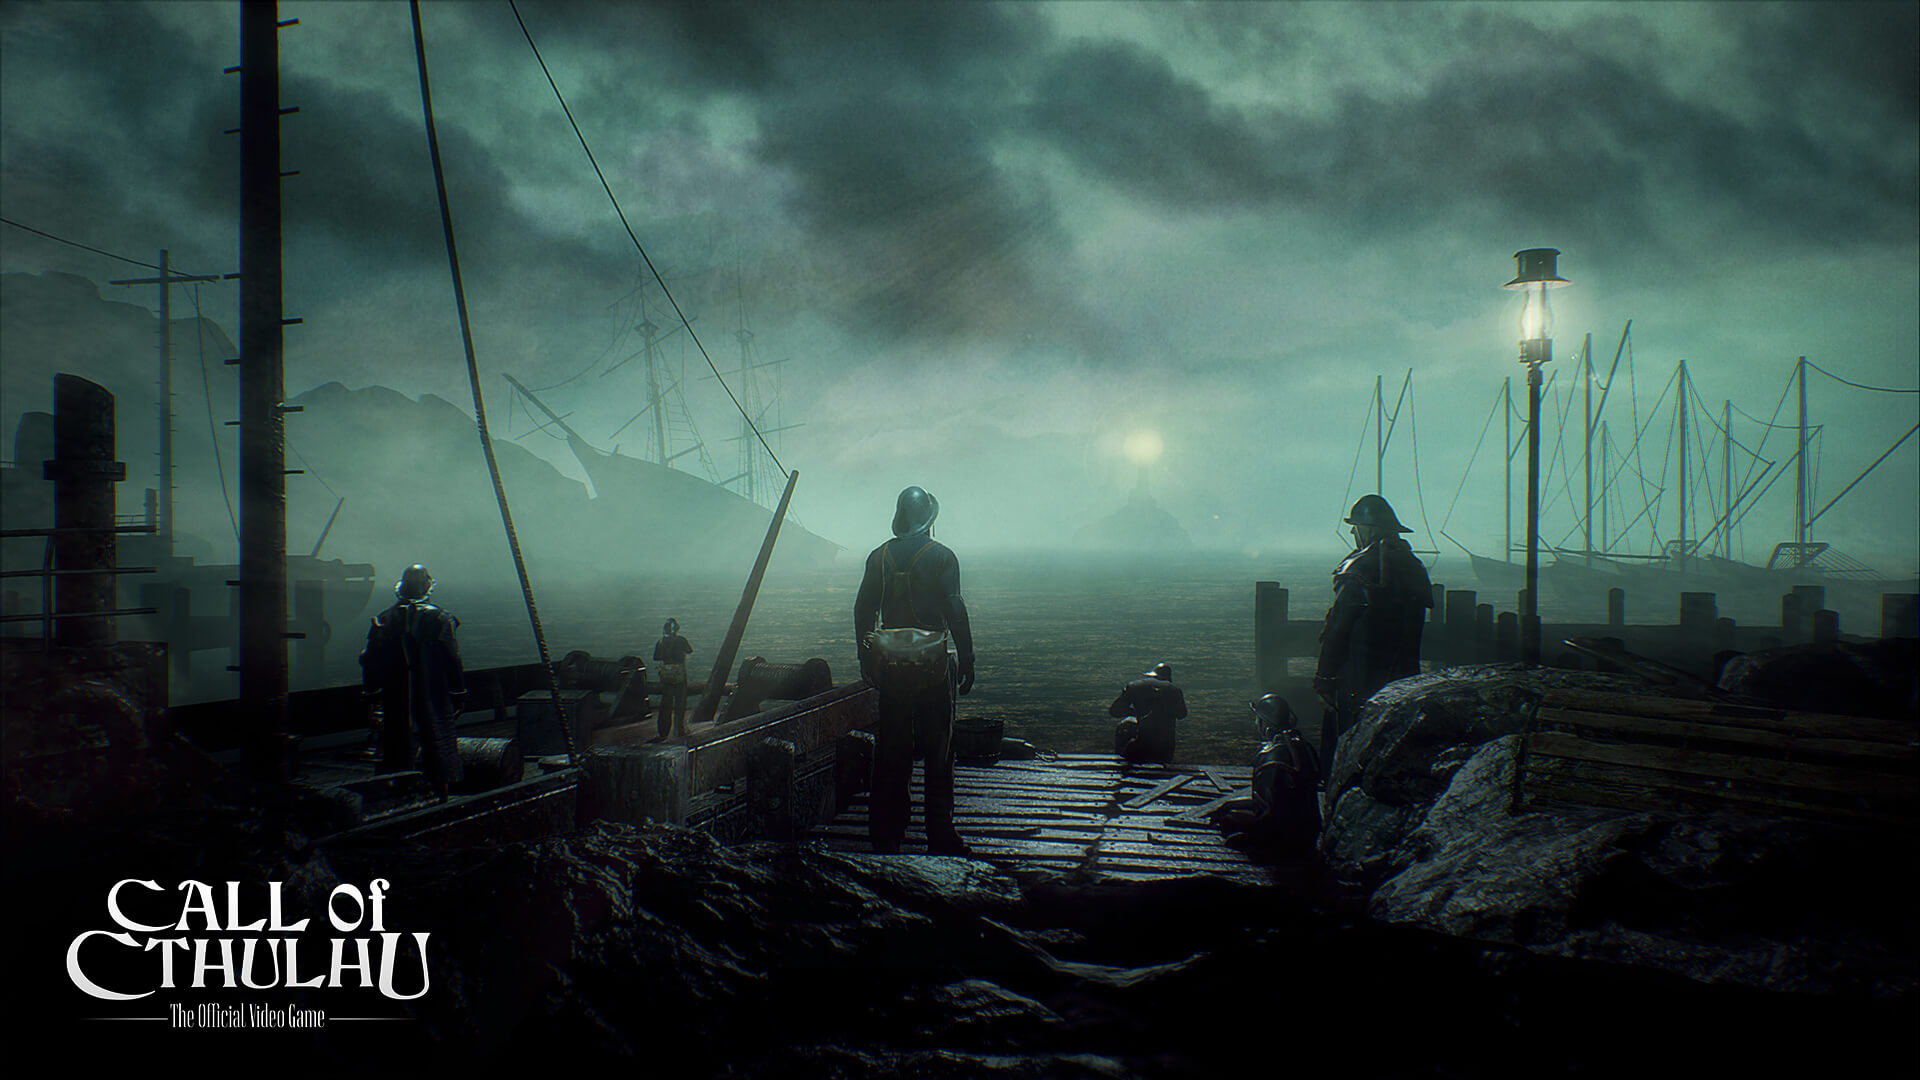 Call of Cthulhu Focus Home Interactive